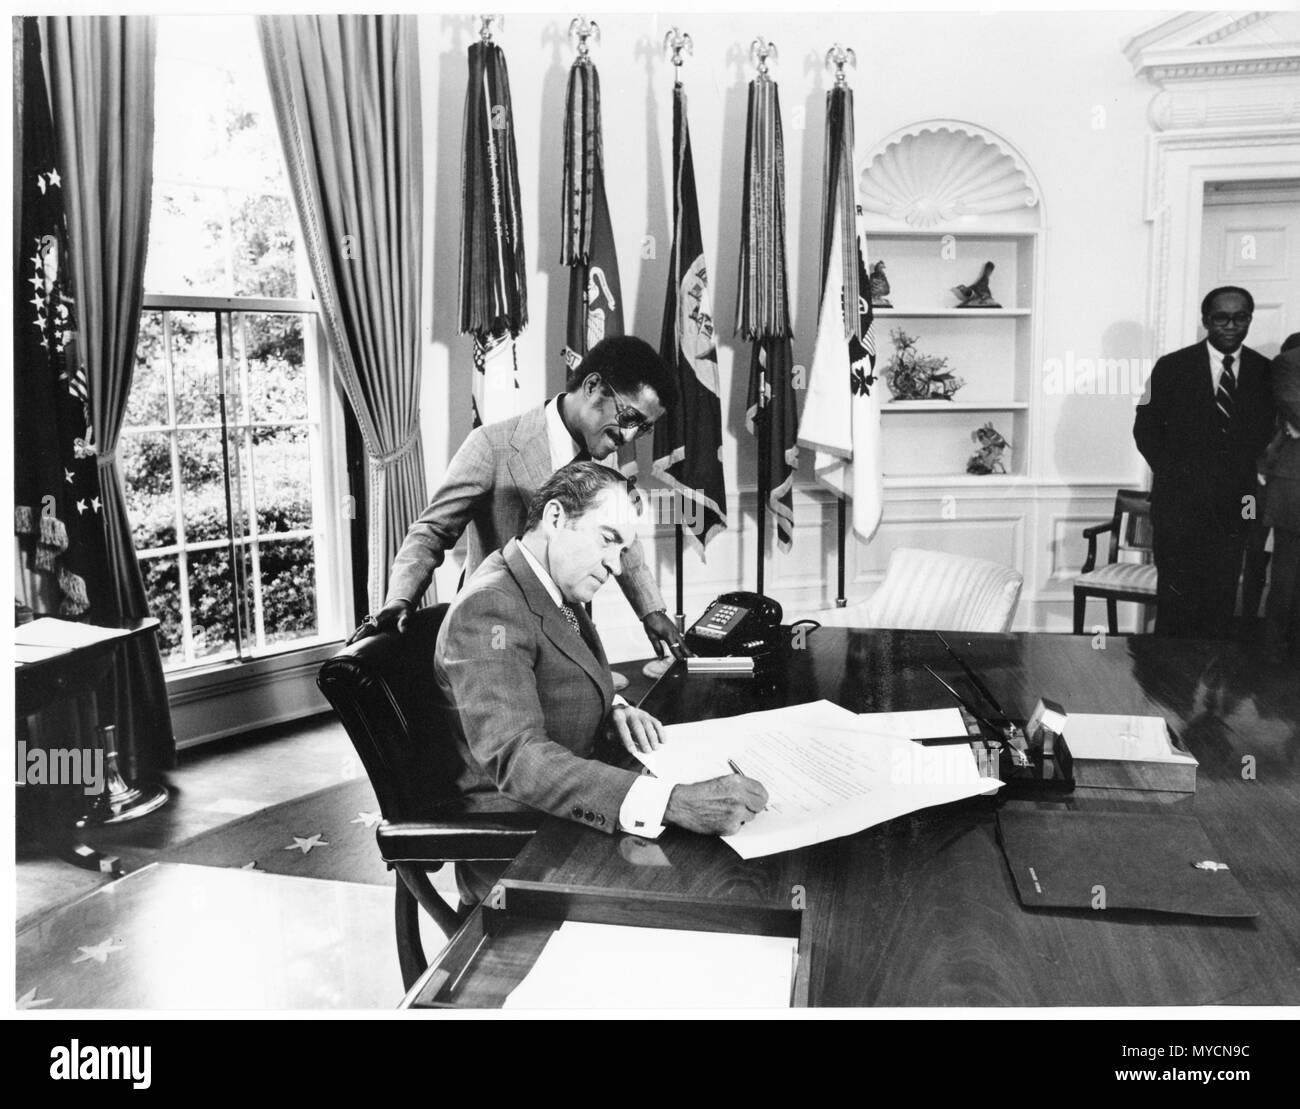 Richard Nixon Watchmen: President Richard Nixon Signing A Paper While Sammy Davis